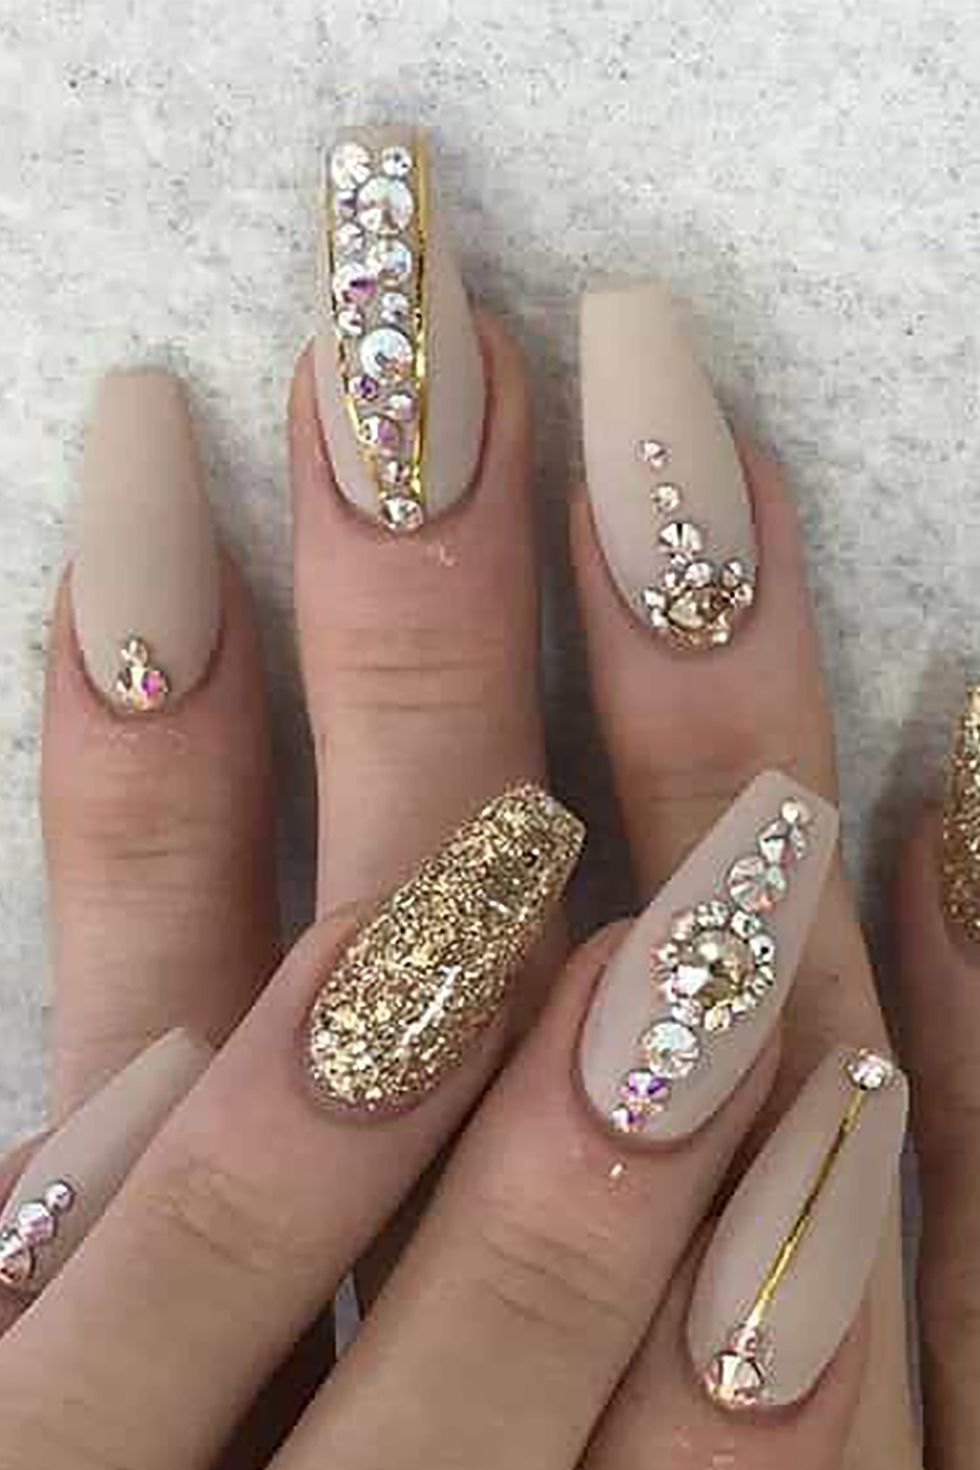 Pretty Gel Manicure Designs That'll Make You Wanna Do Your